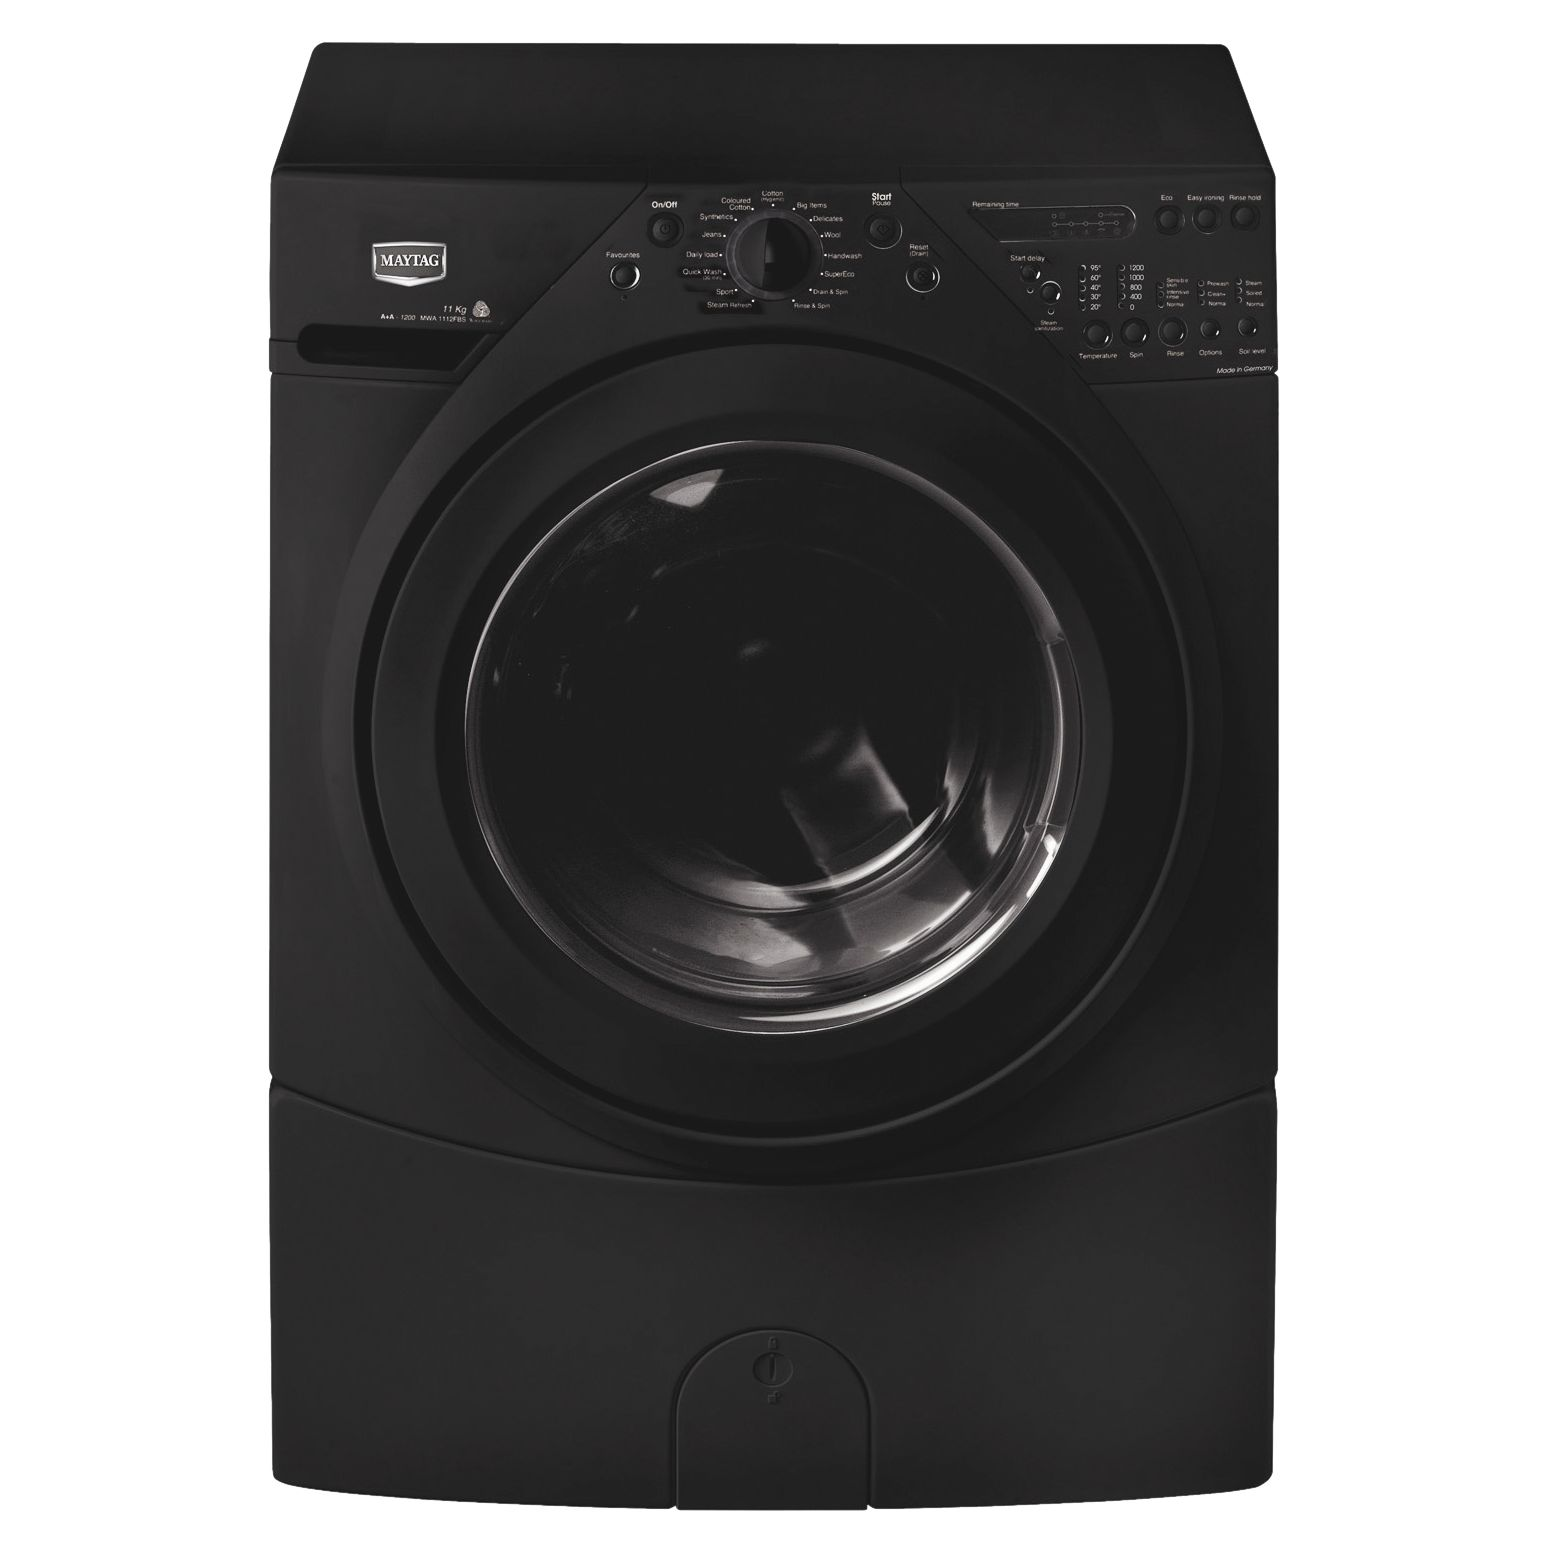 Maytag MWA1112FBS Washing Machine, Black